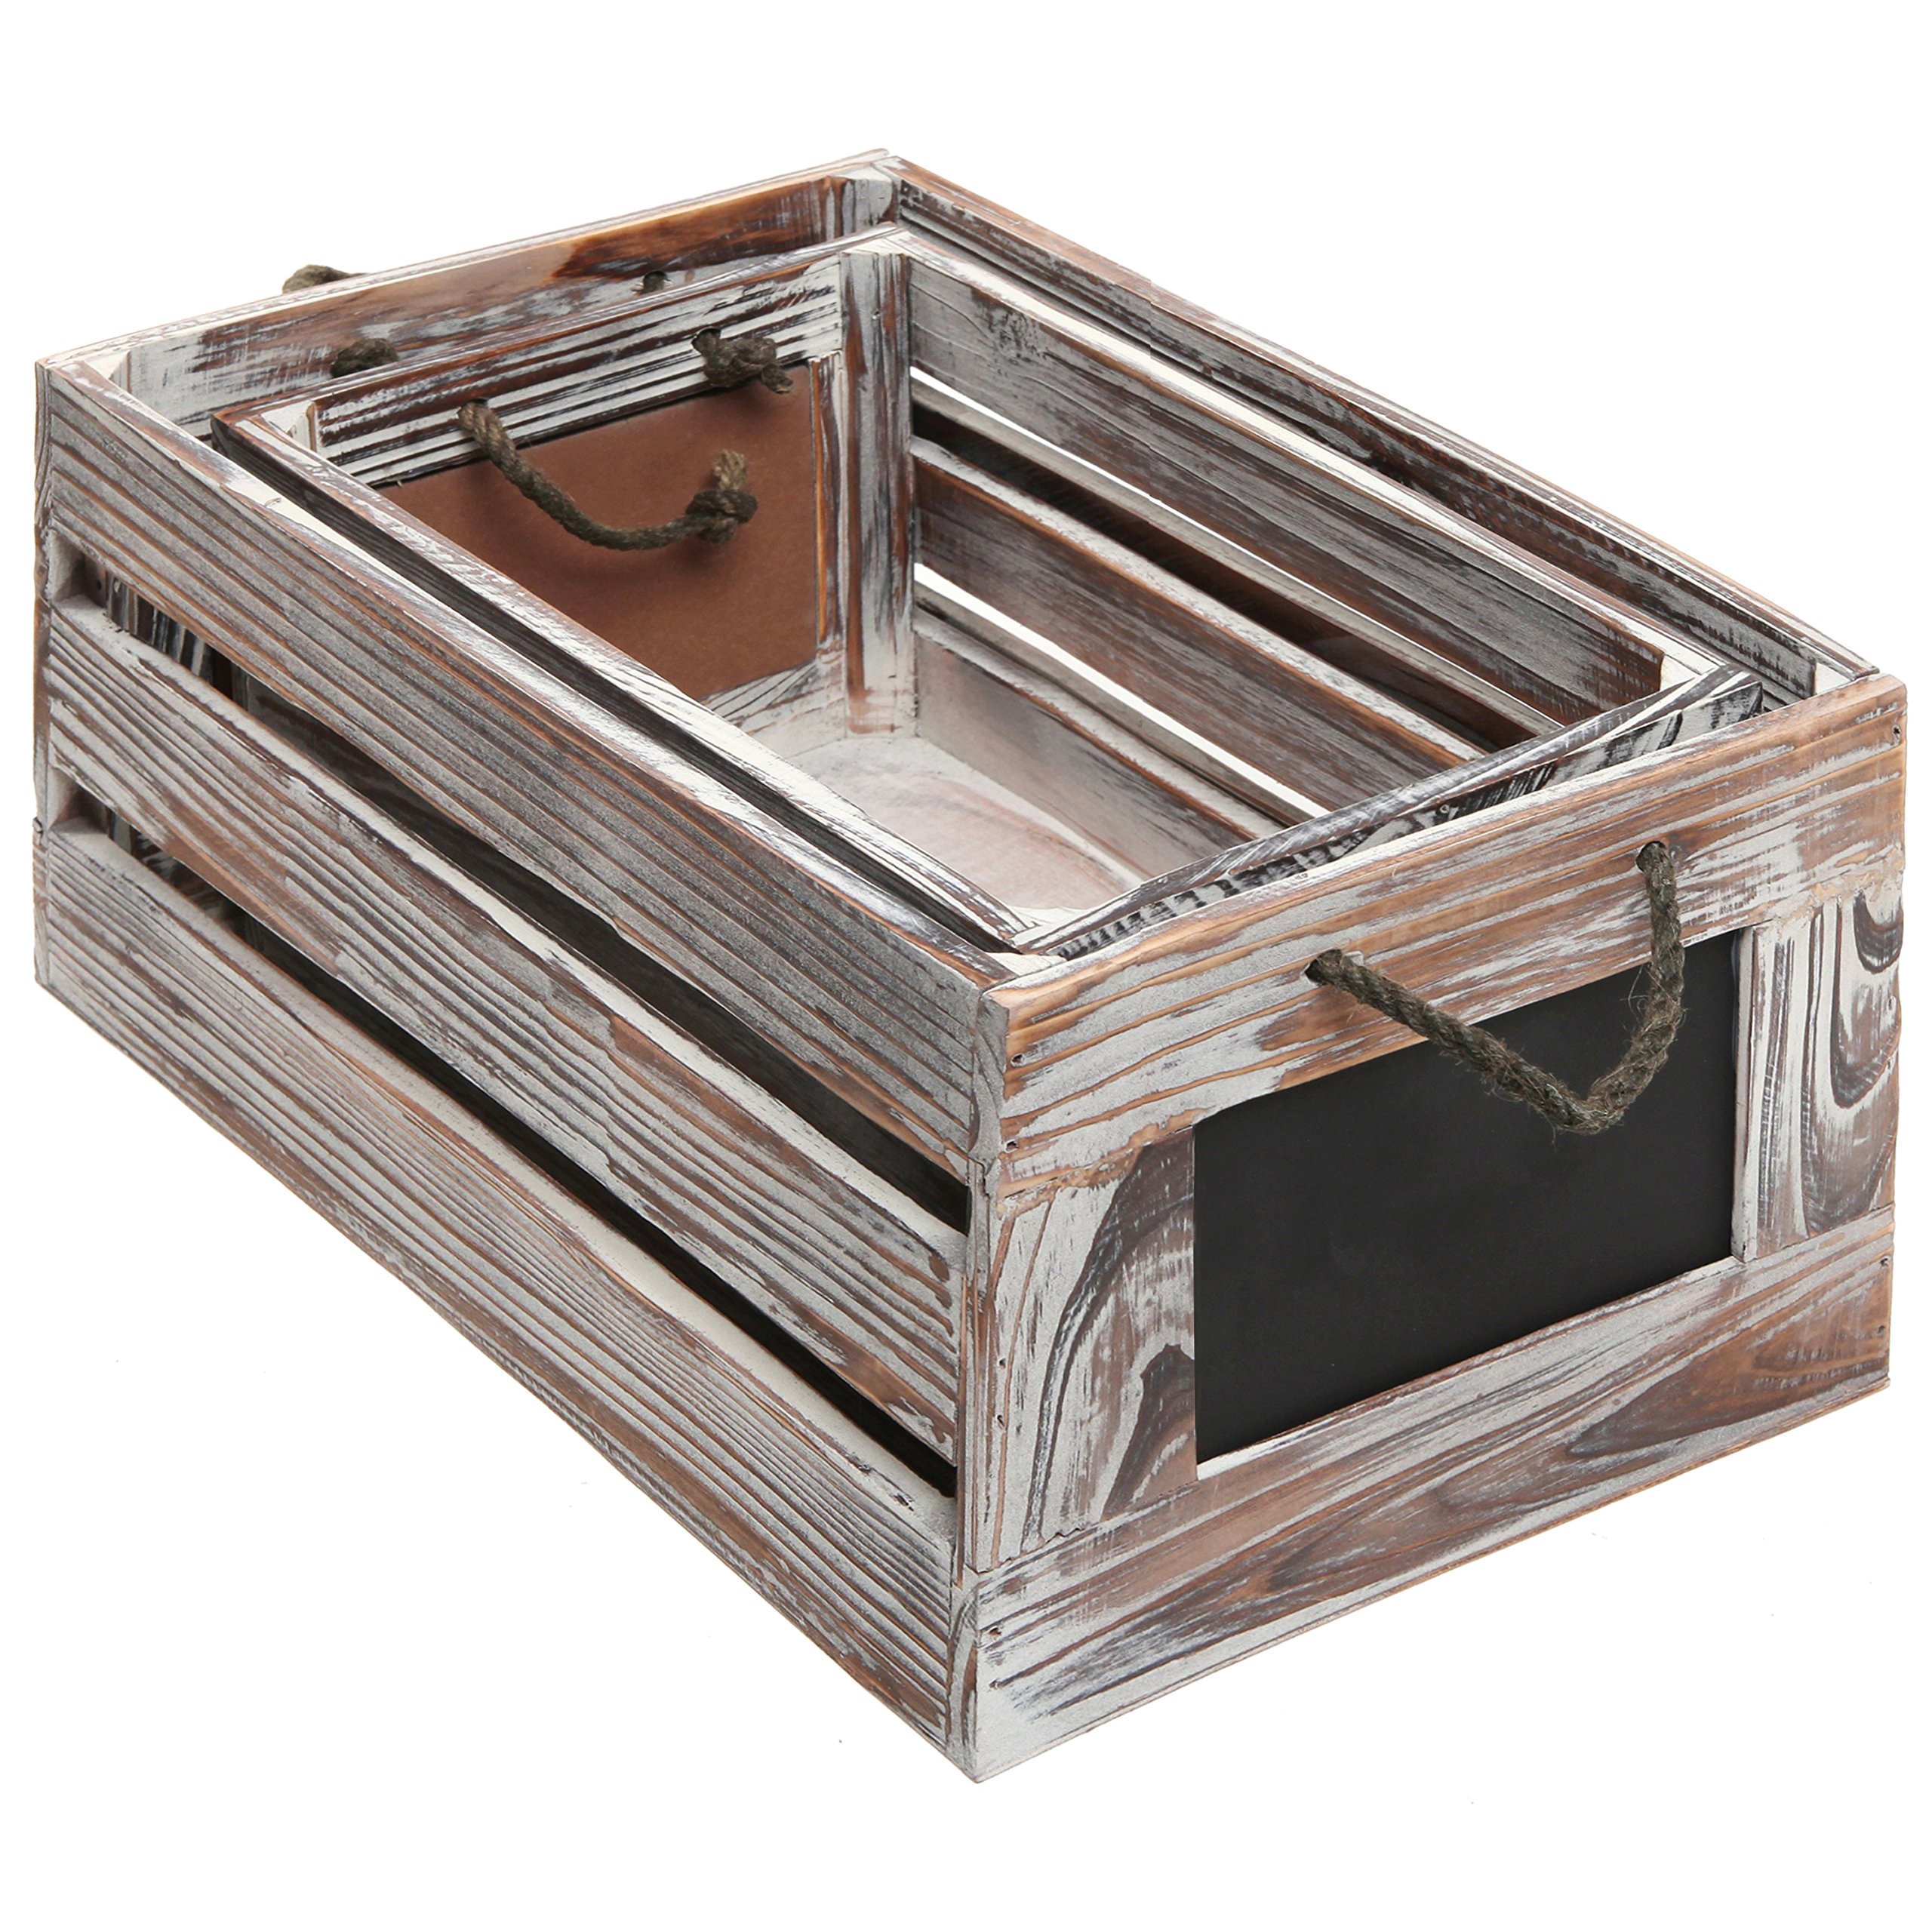 Distressed Torched Wood Finish Nesting Boxes / Rustic Storage Crates with Chalkboard Labels (Set of 2) by MyGift (Image #4)